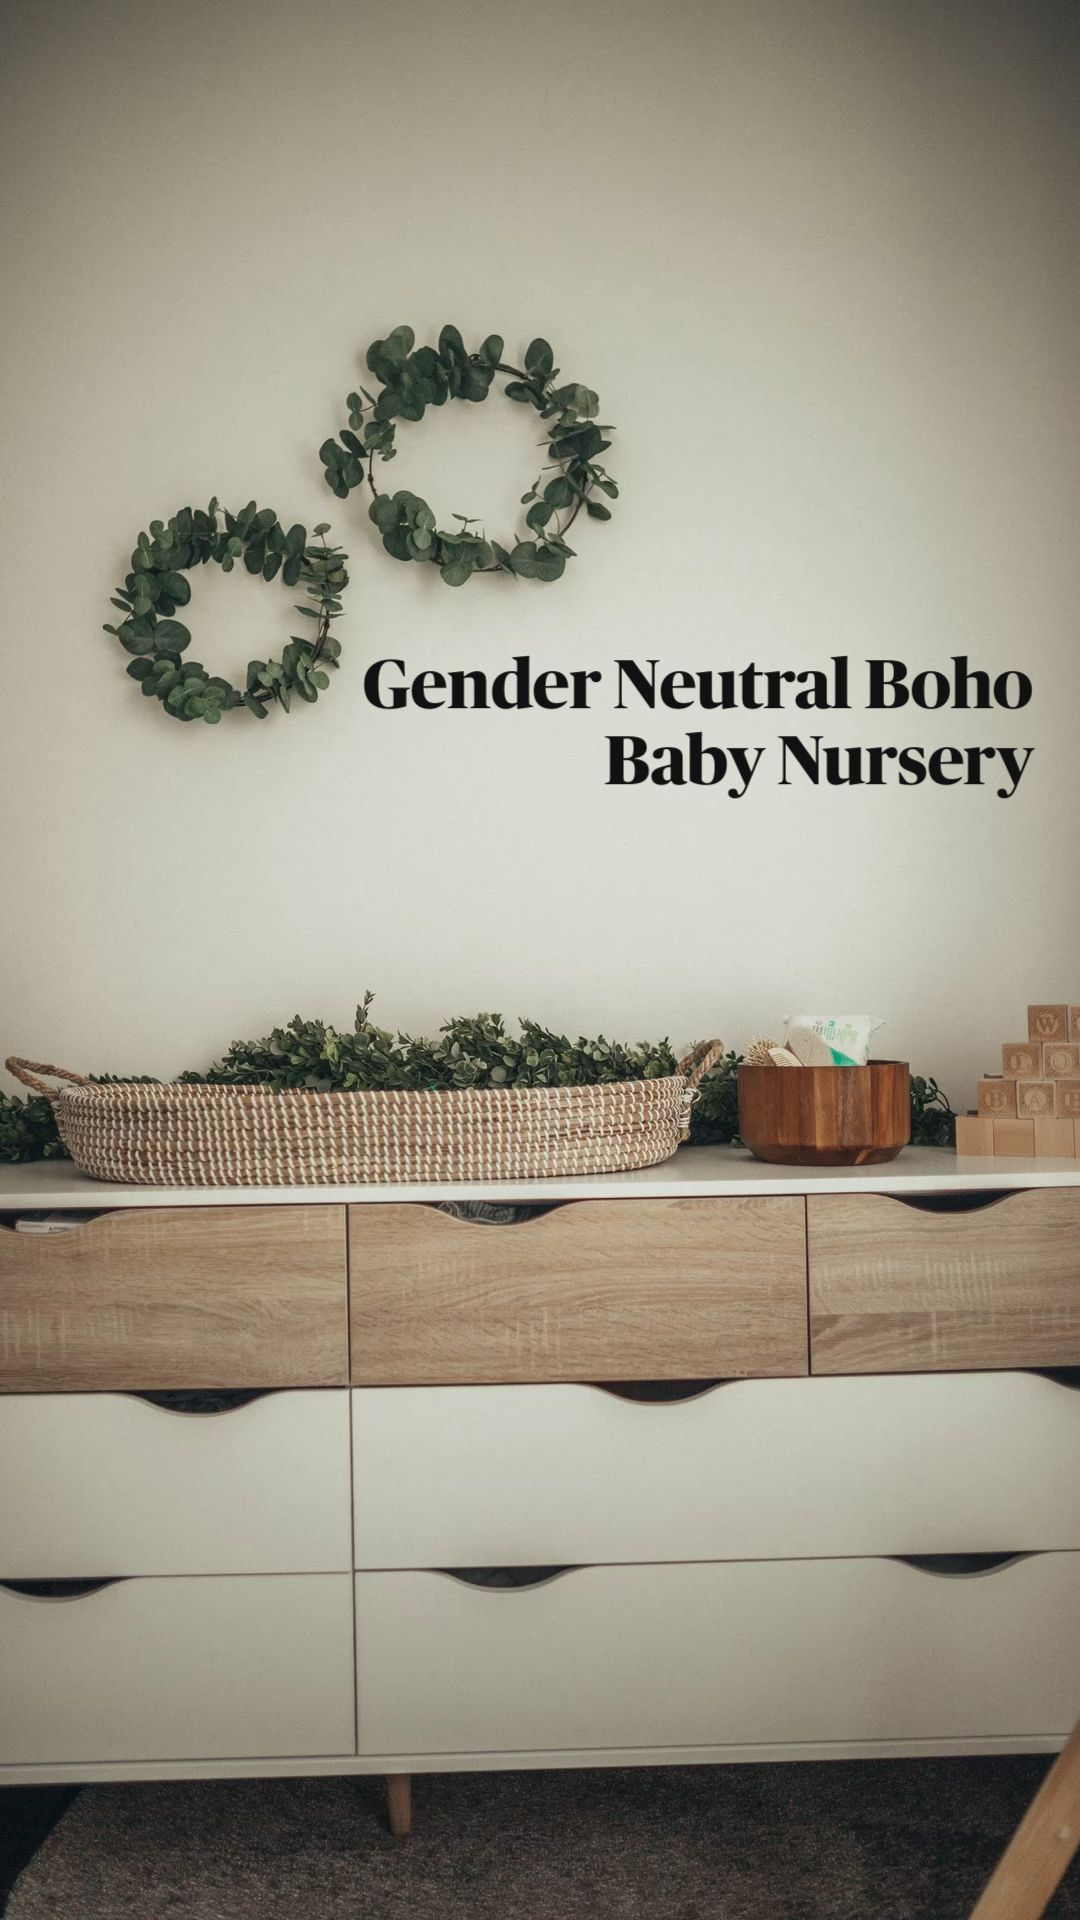 Gender Neutral Boho Baby Nursery - Nursery Organization